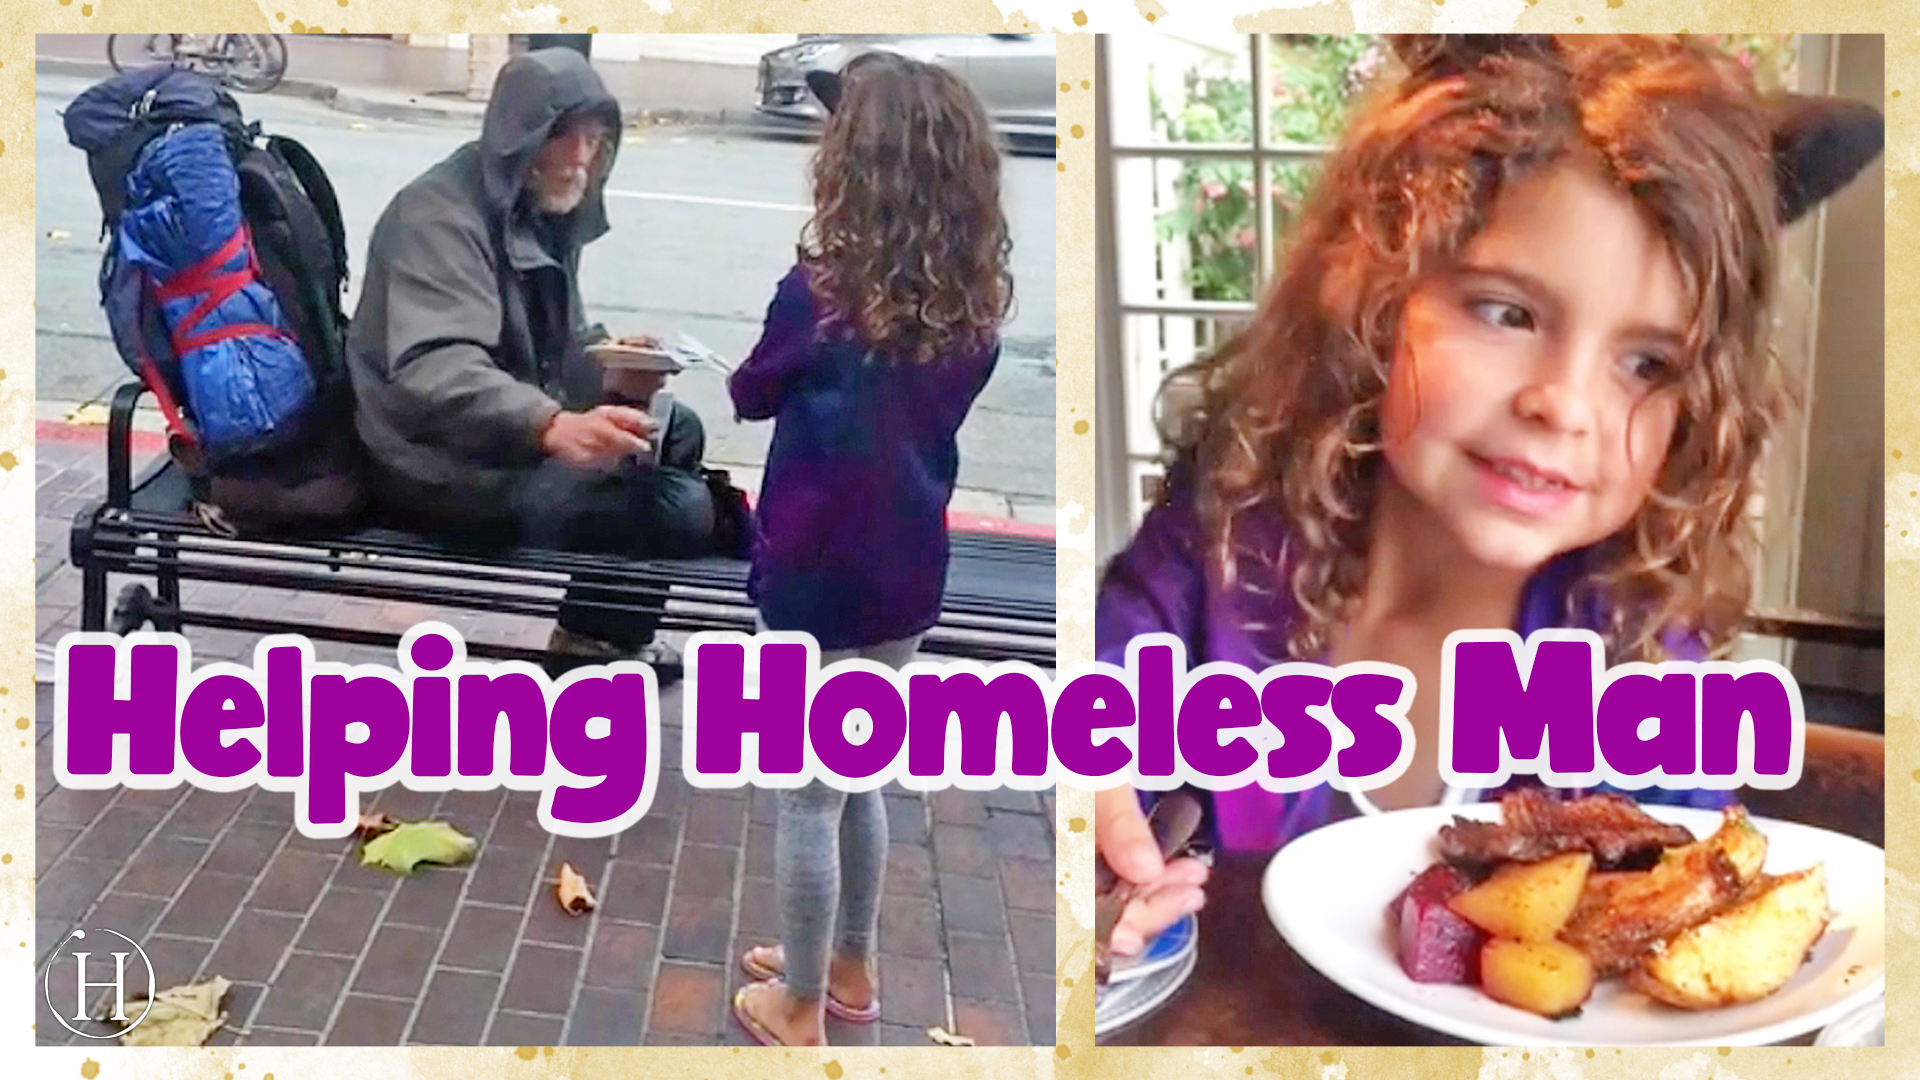 Little Girl Gives Homeless Man Plate of Food | Humanity Life